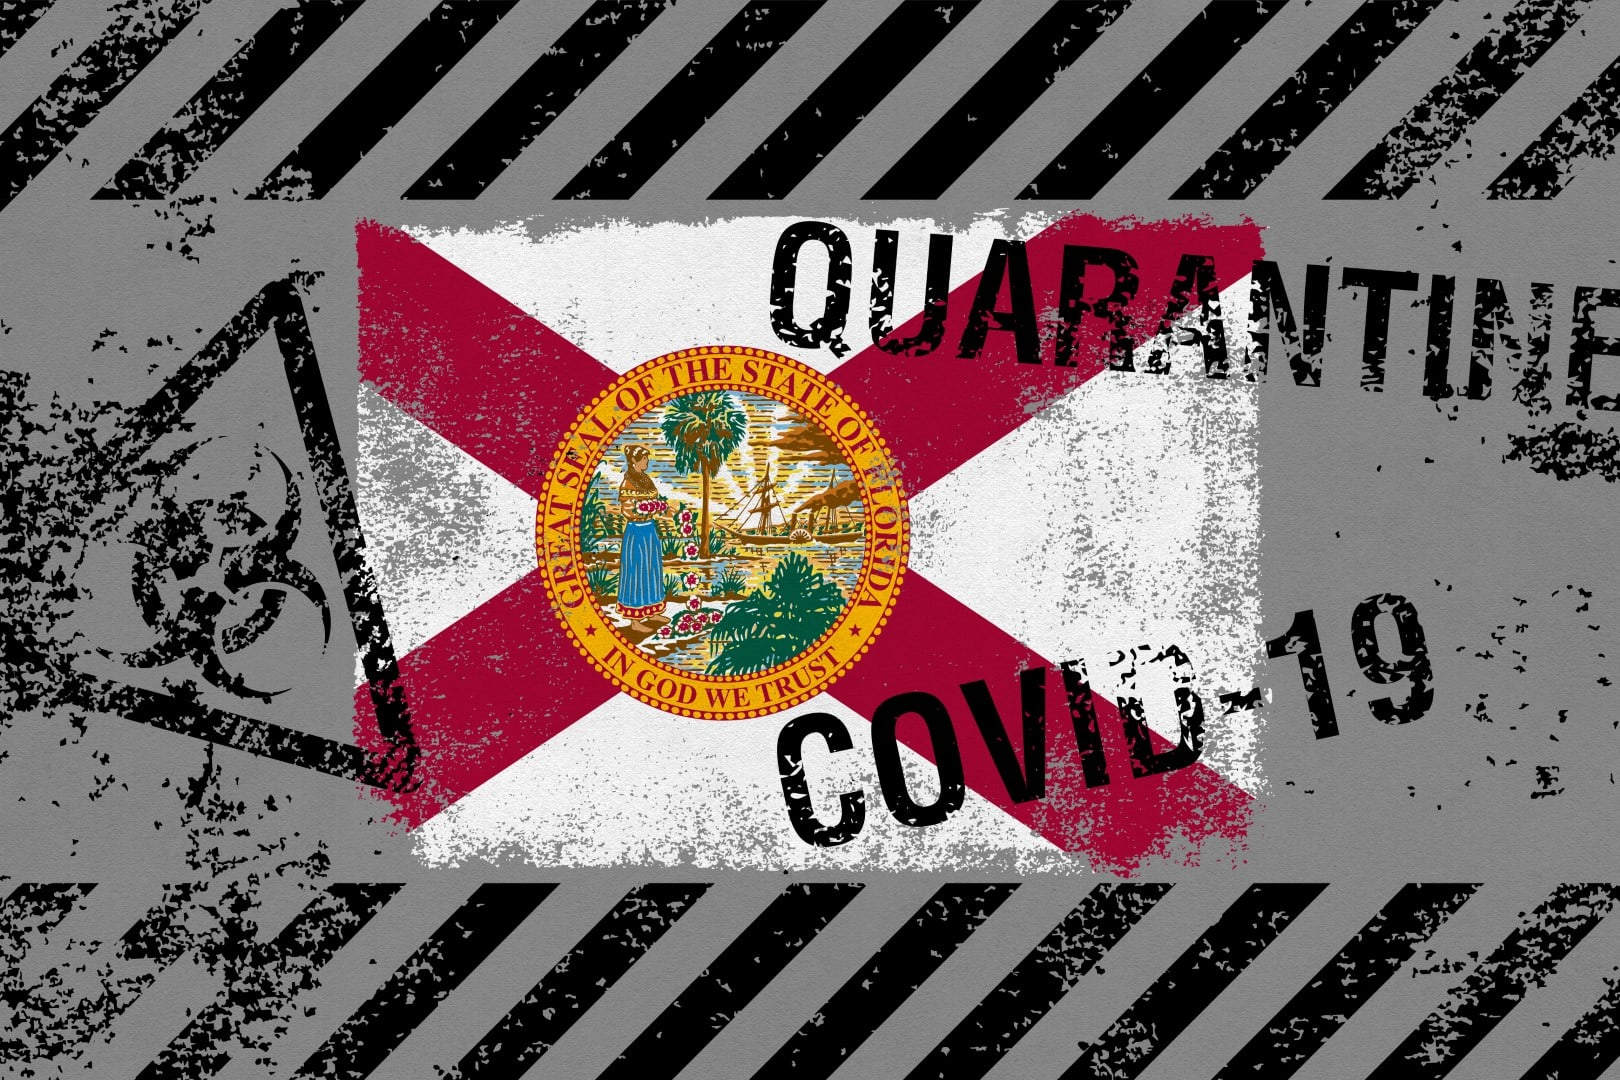 Flag of the state of Florida on grunge background with COVID-19 and QUARANTINE symbols on it. Novel Coronavirus (2019-nCoV) concept, for an outbreak occurs in Florida, US.